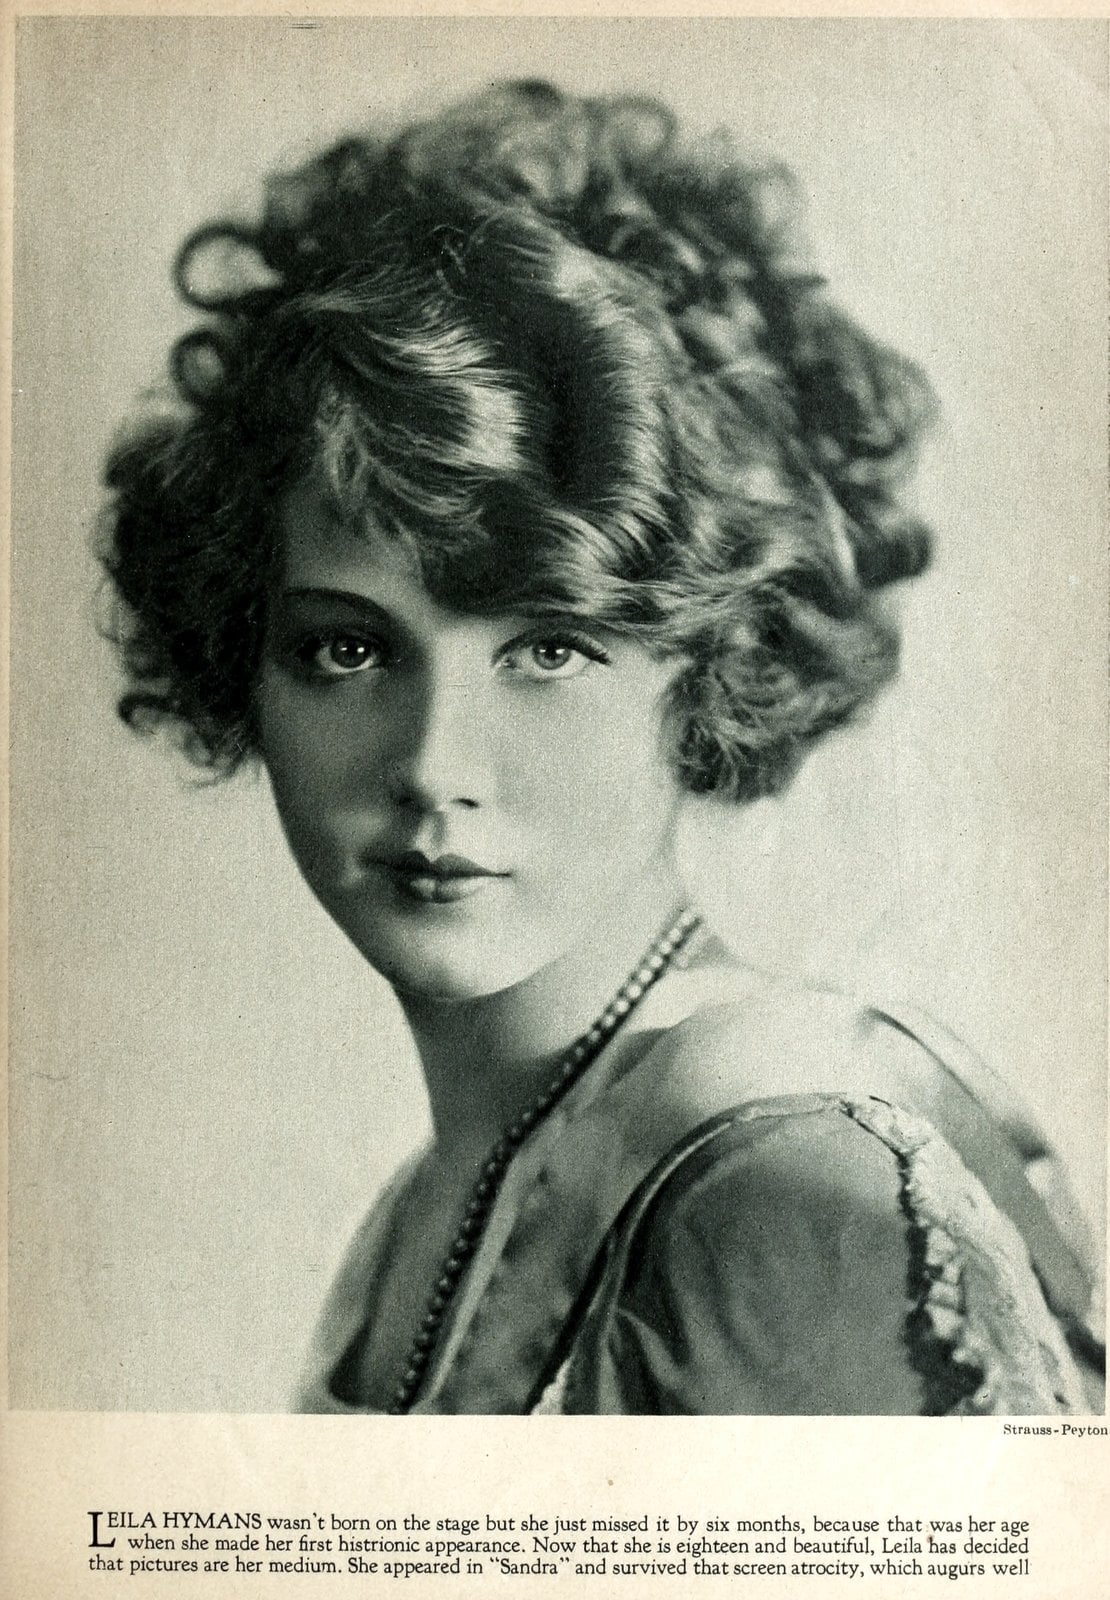 Real vintage 1920s hairstyles for women - actress Leila Hyams